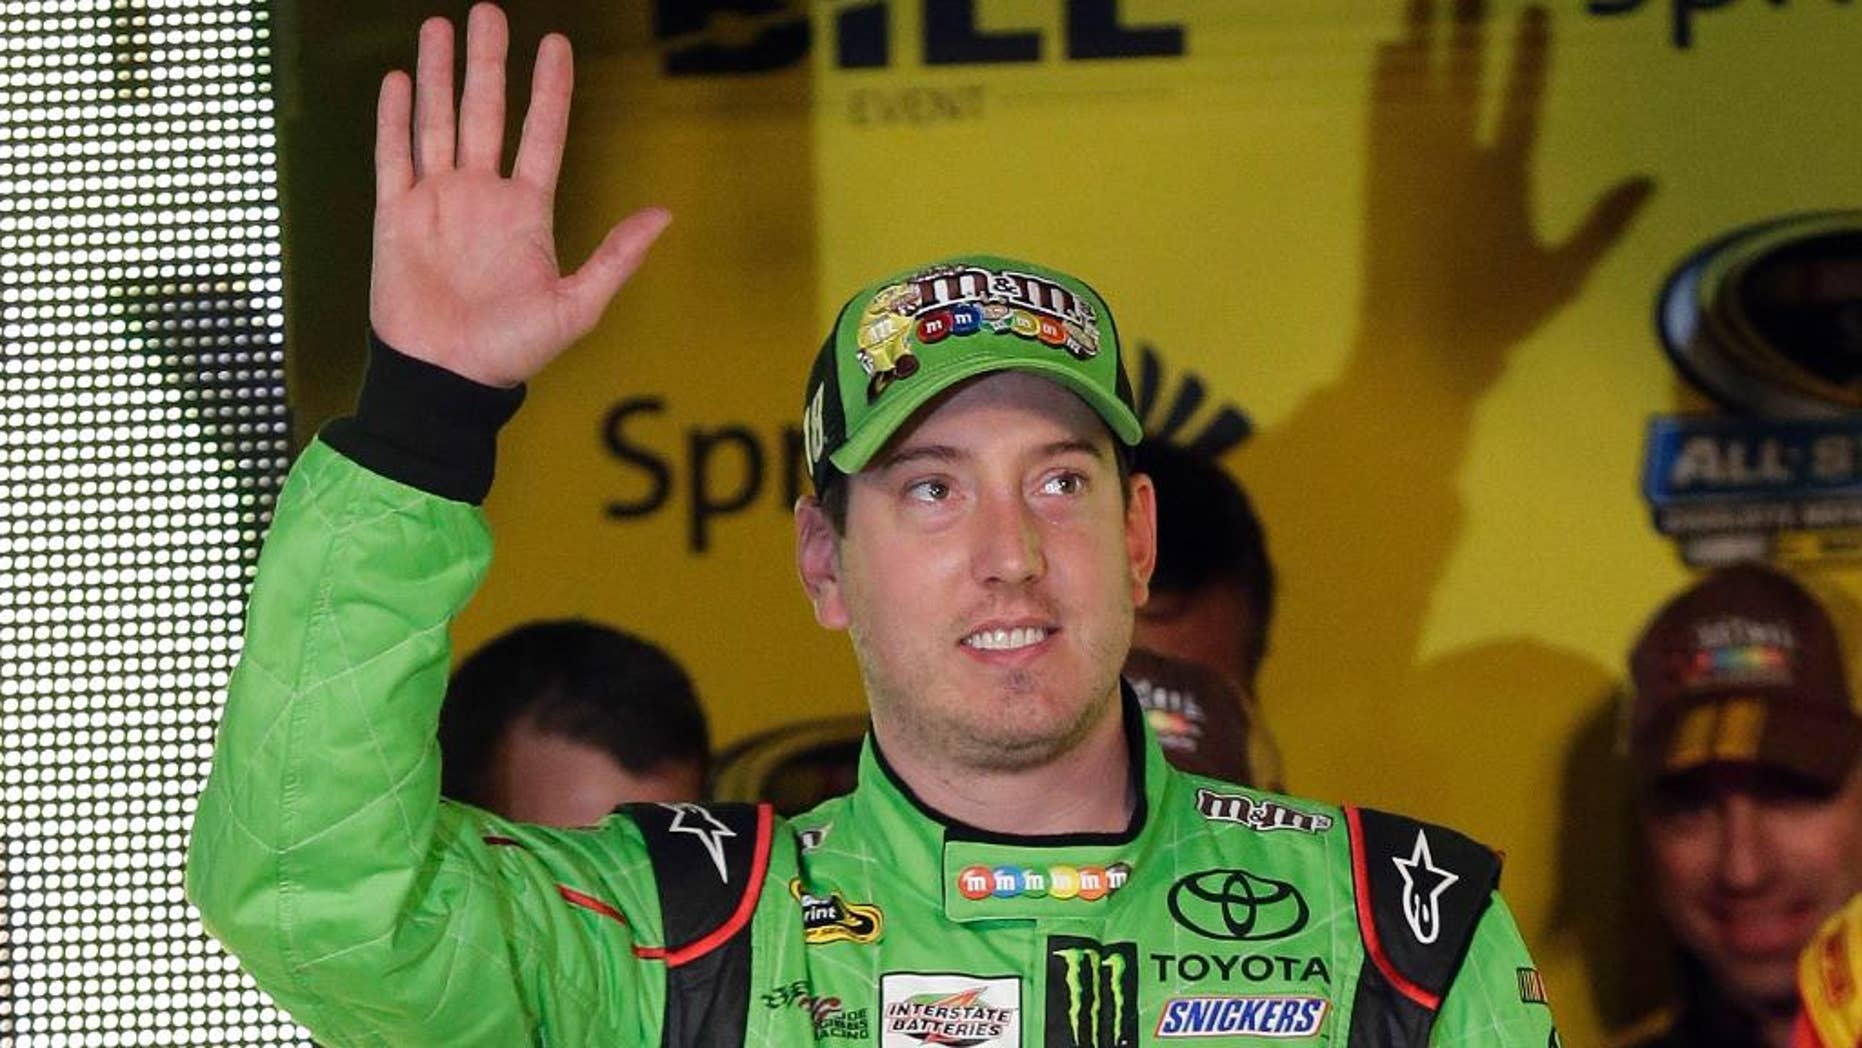 Kyle Busch waves during driver introductions for the NASCAR Sprint All-Star auto race at Charlotte Motor Speedway in Concord, N.C., Saturday, May 16, 2015. (AP Photo/Gerry Broome)